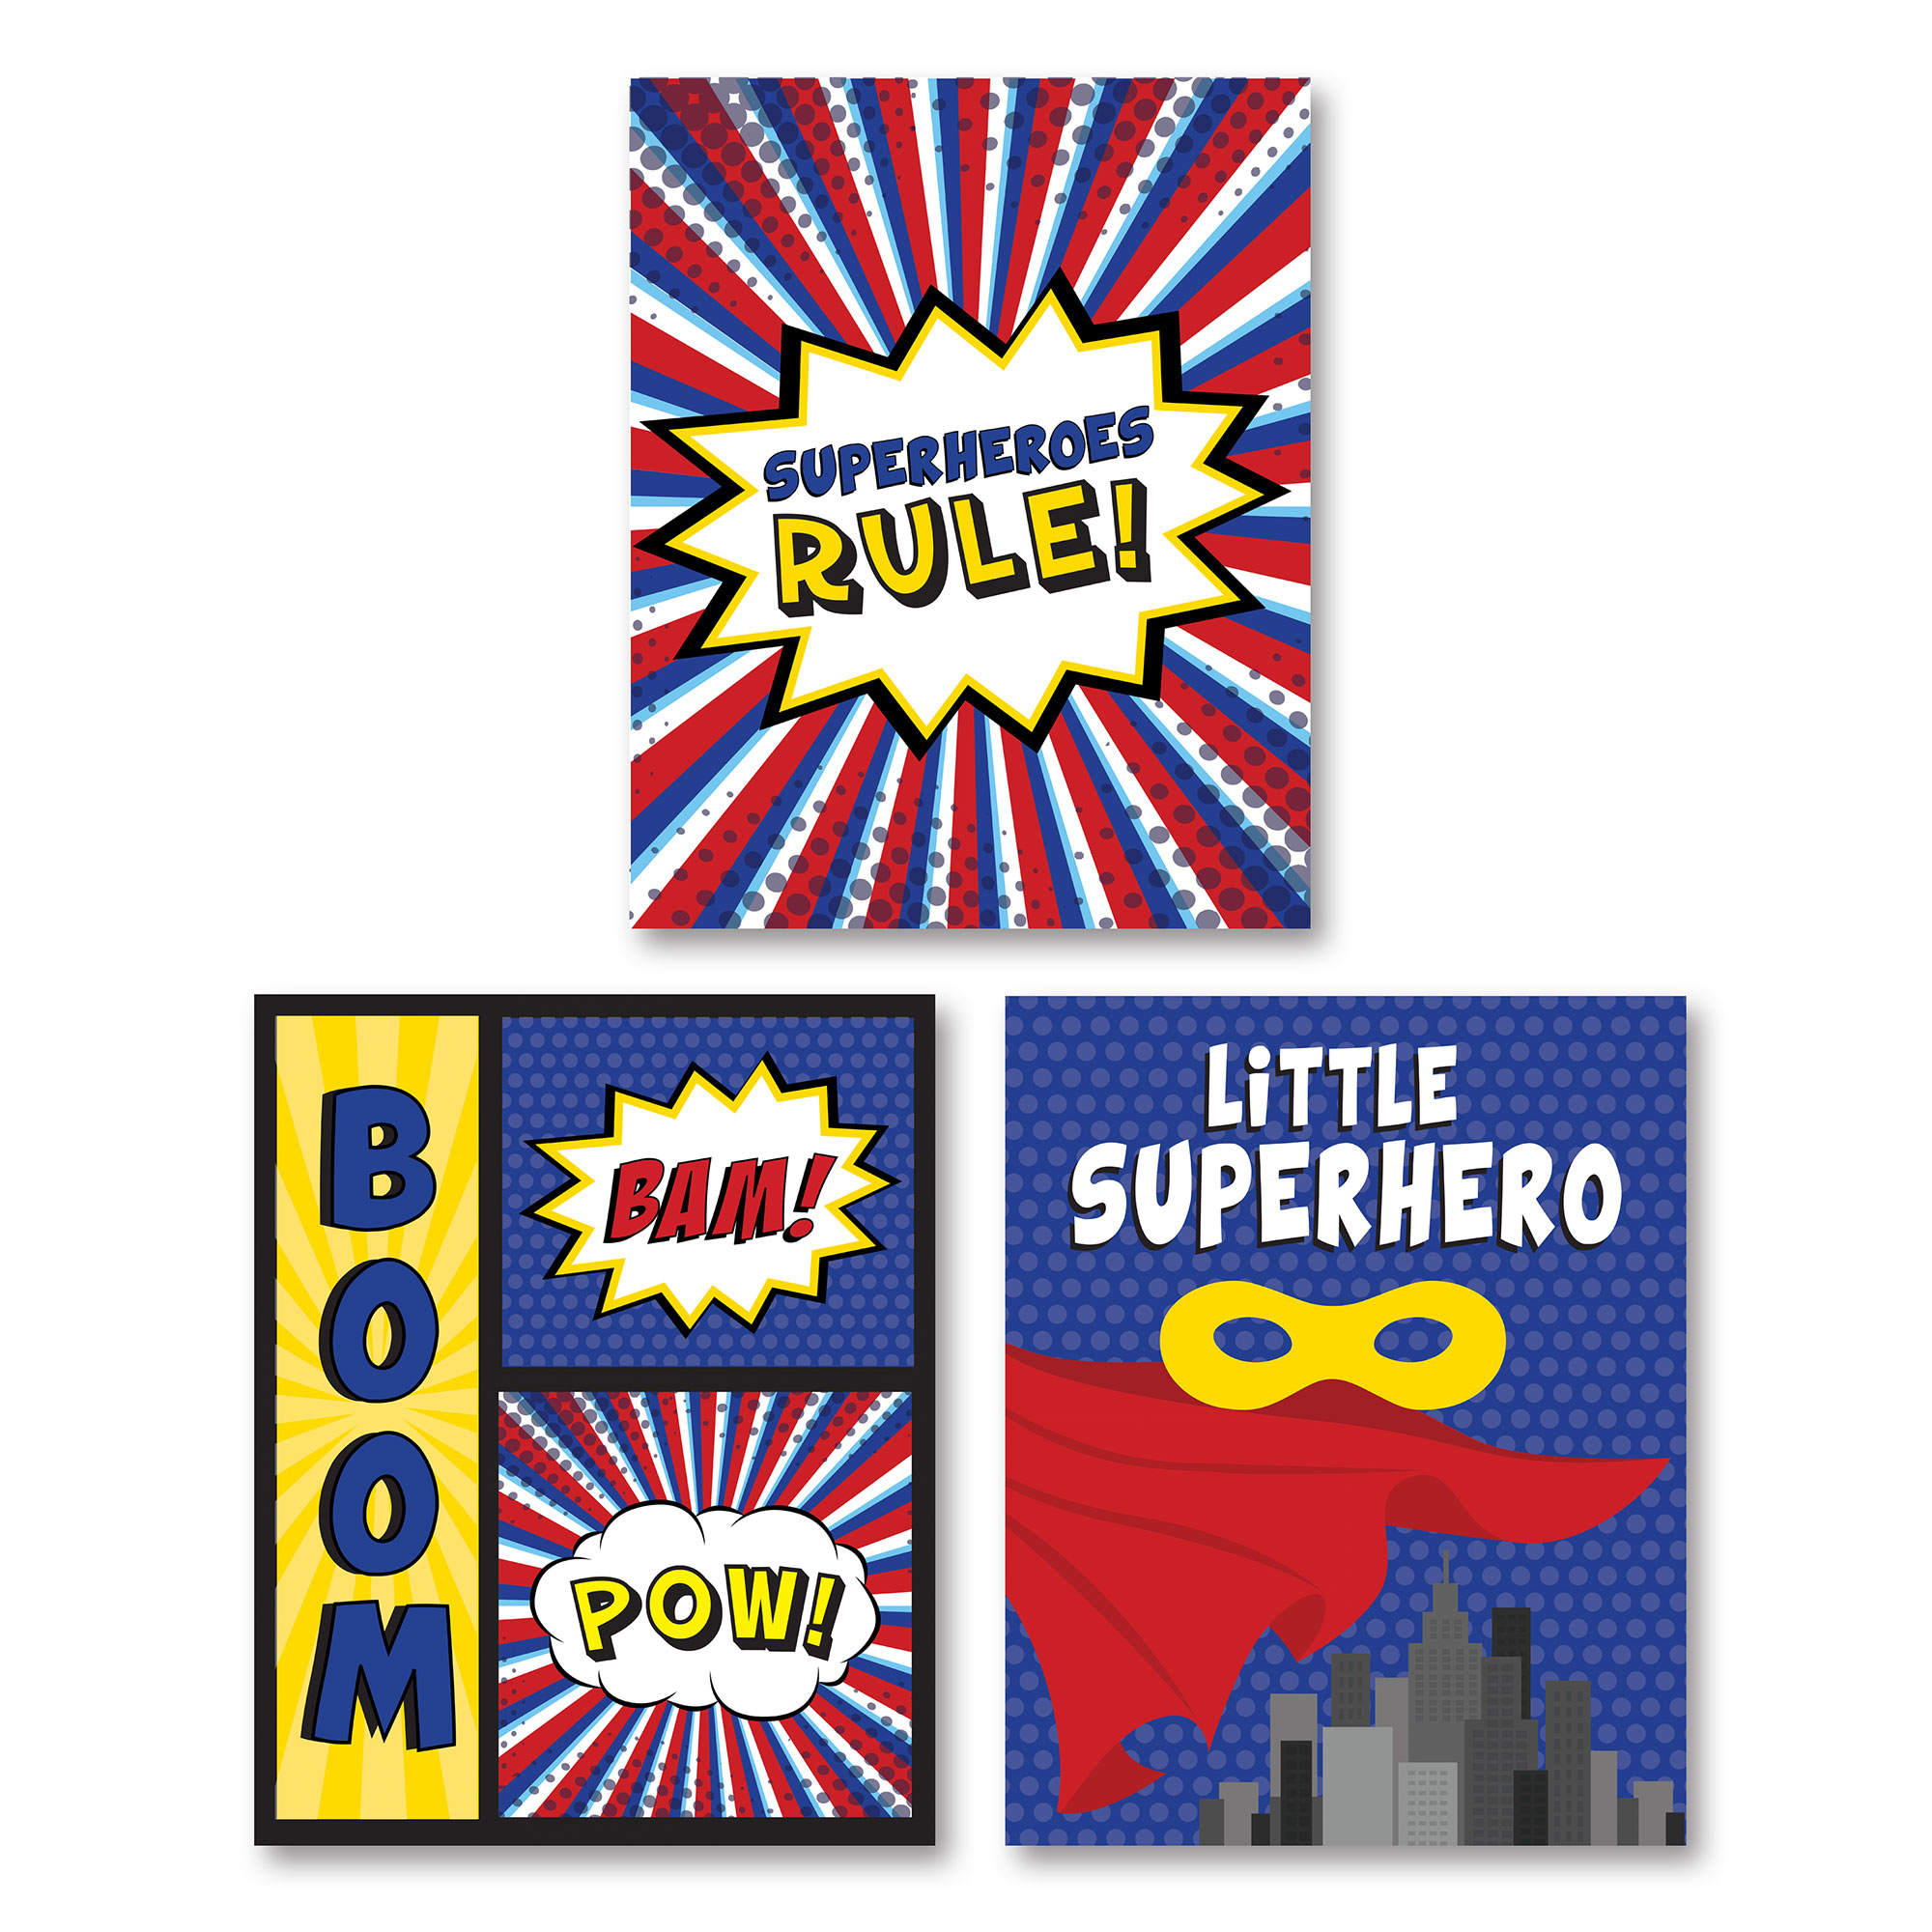 """Adorable Red, Blue and Yellow """"Superheroes Rule,"""" """"Boom, Bam, Pow"""" and """"Little Superhero"""" Set, Perfect for a Child's Room or Nursery; Three 11x14in Unframed Paper Posters"""